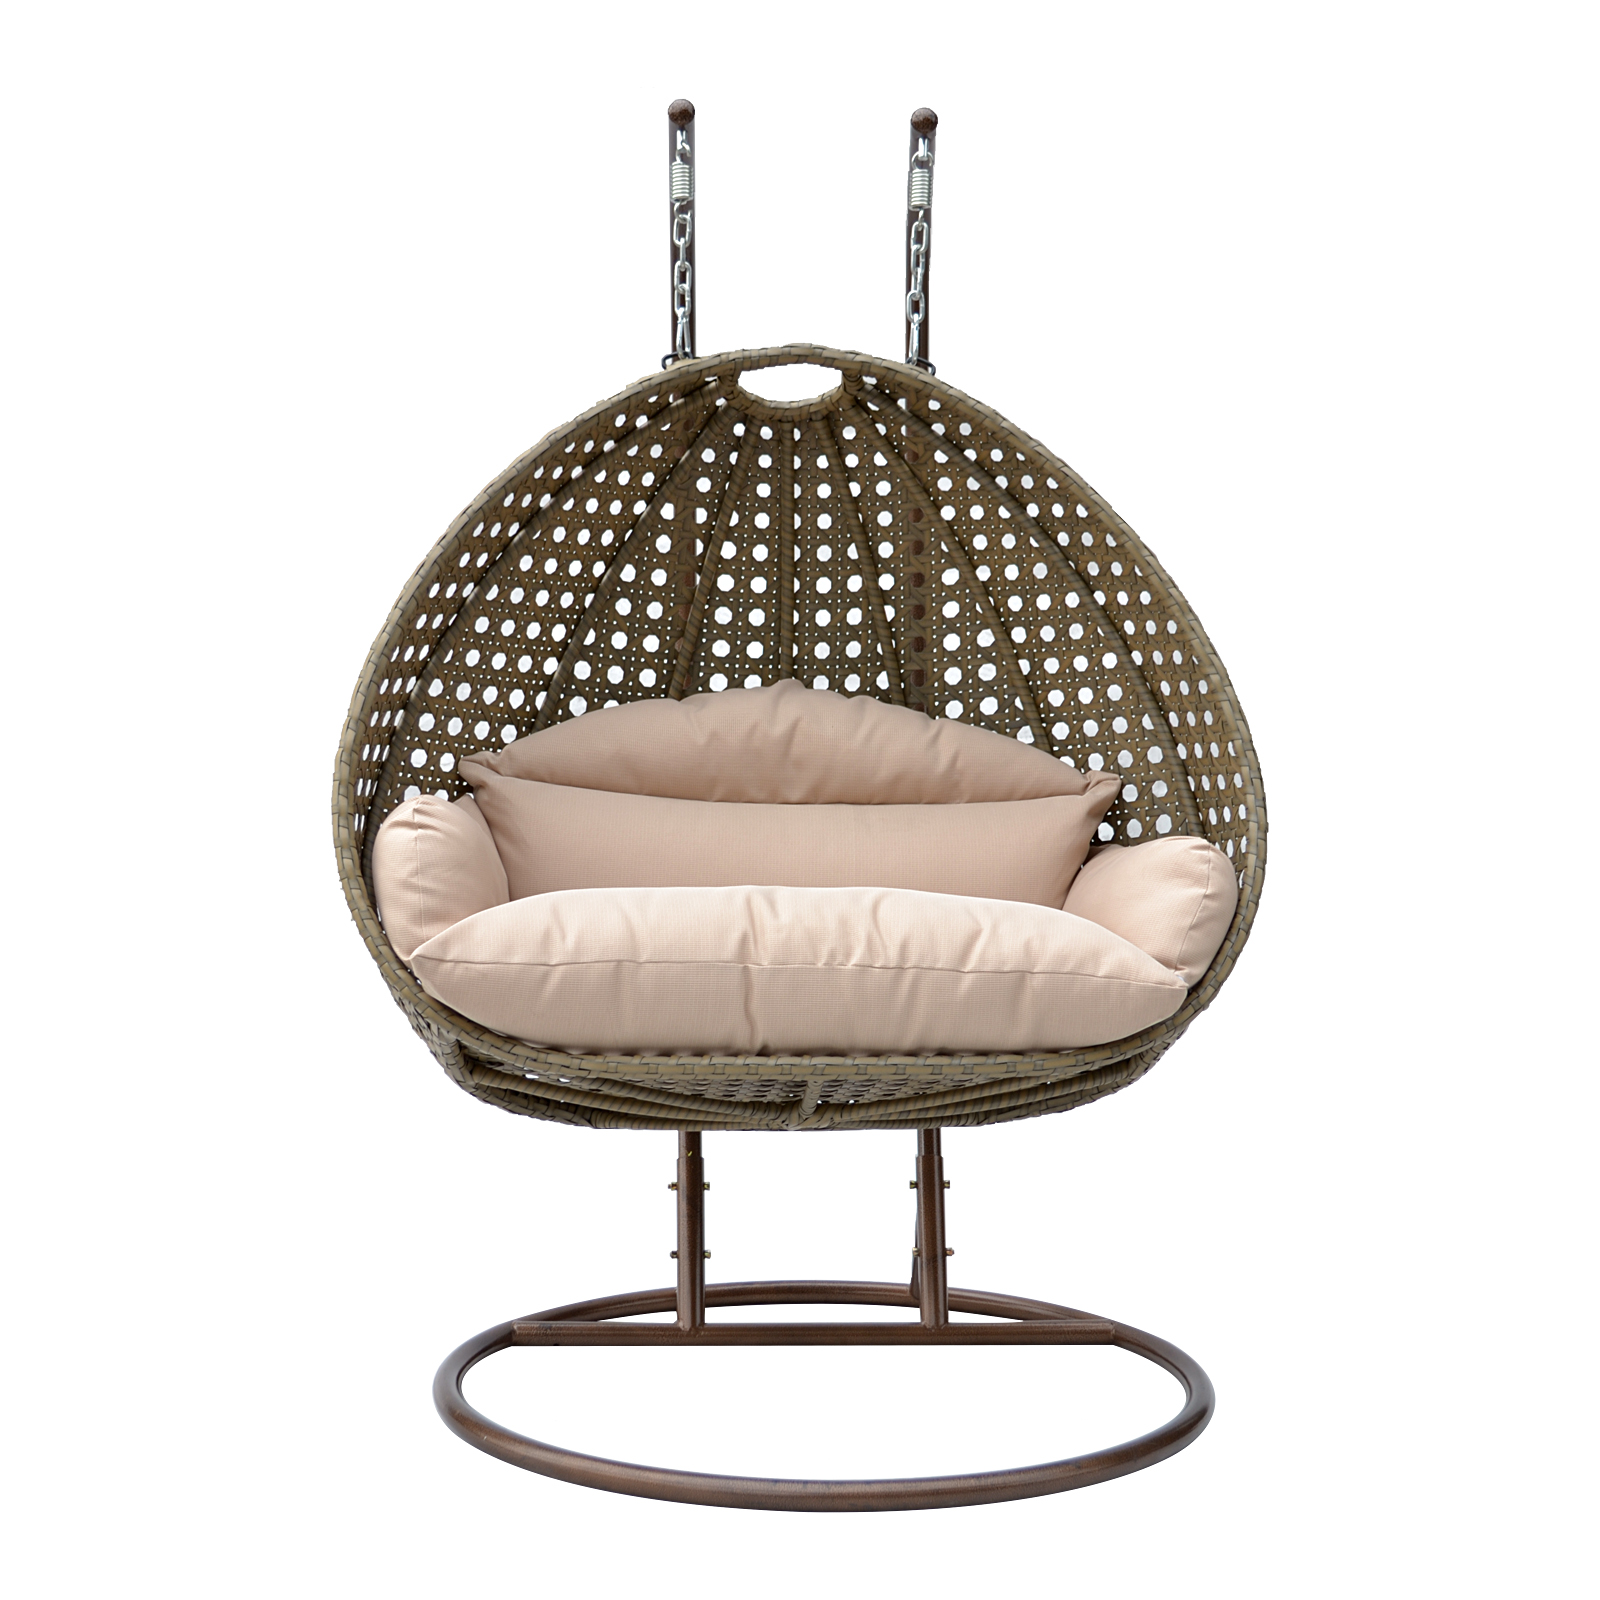 2 person wicker egg basket swing chair patio outdoor. Black Bedroom Furniture Sets. Home Design Ideas